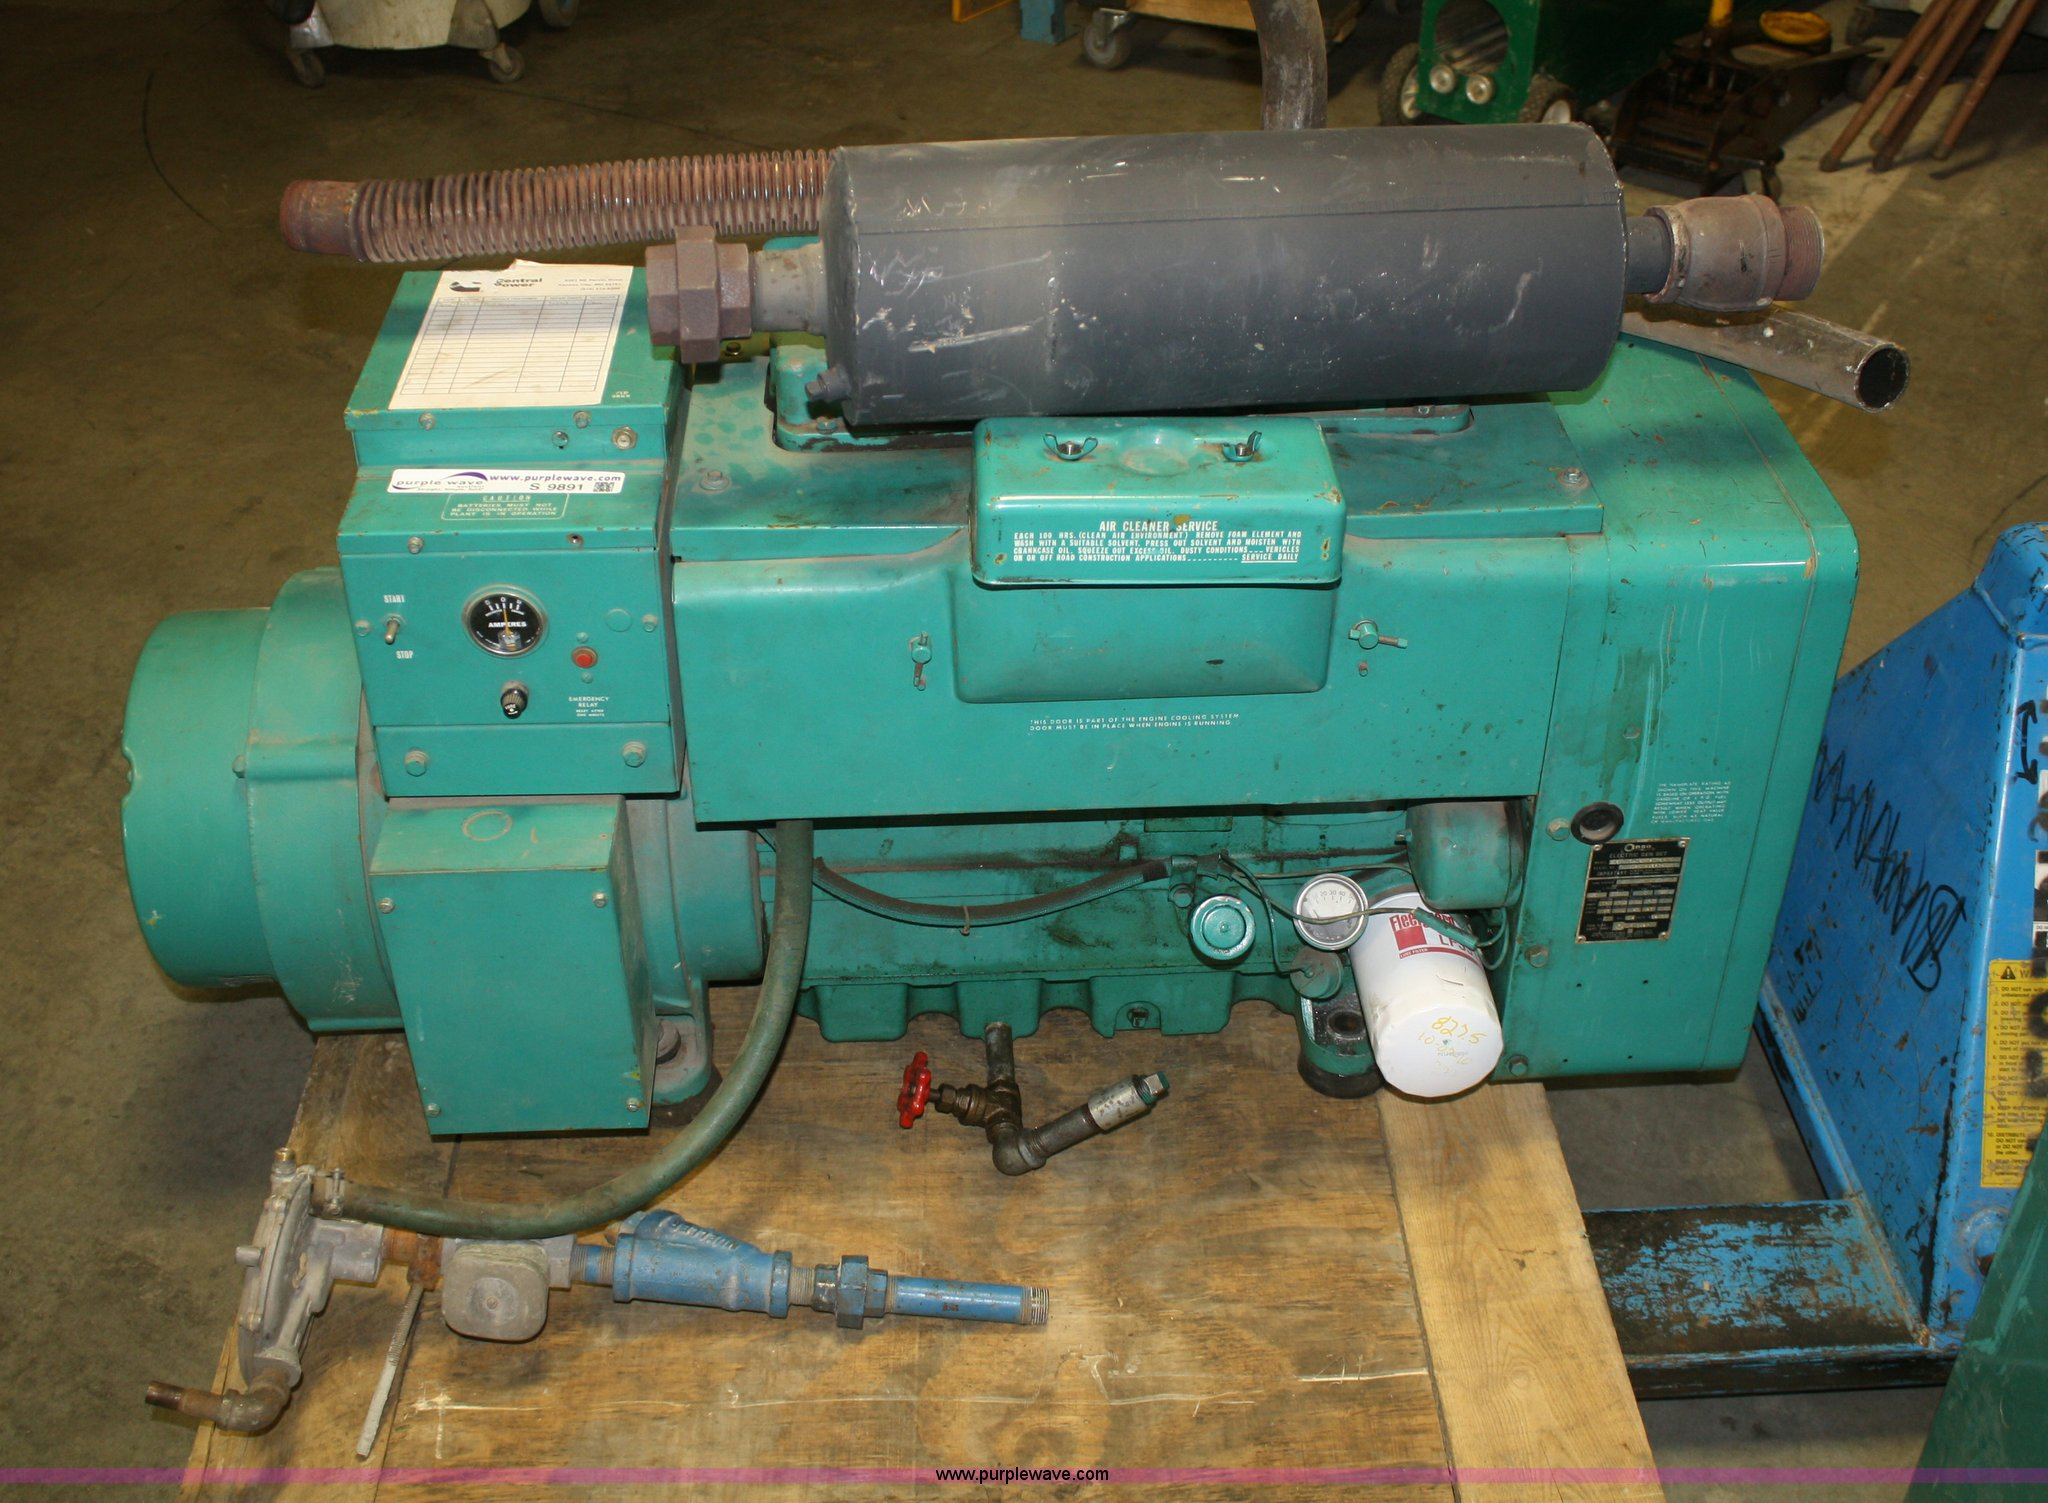 Onan 15 kW generator set | Item S9891 | SOLD! March 6 Midwes